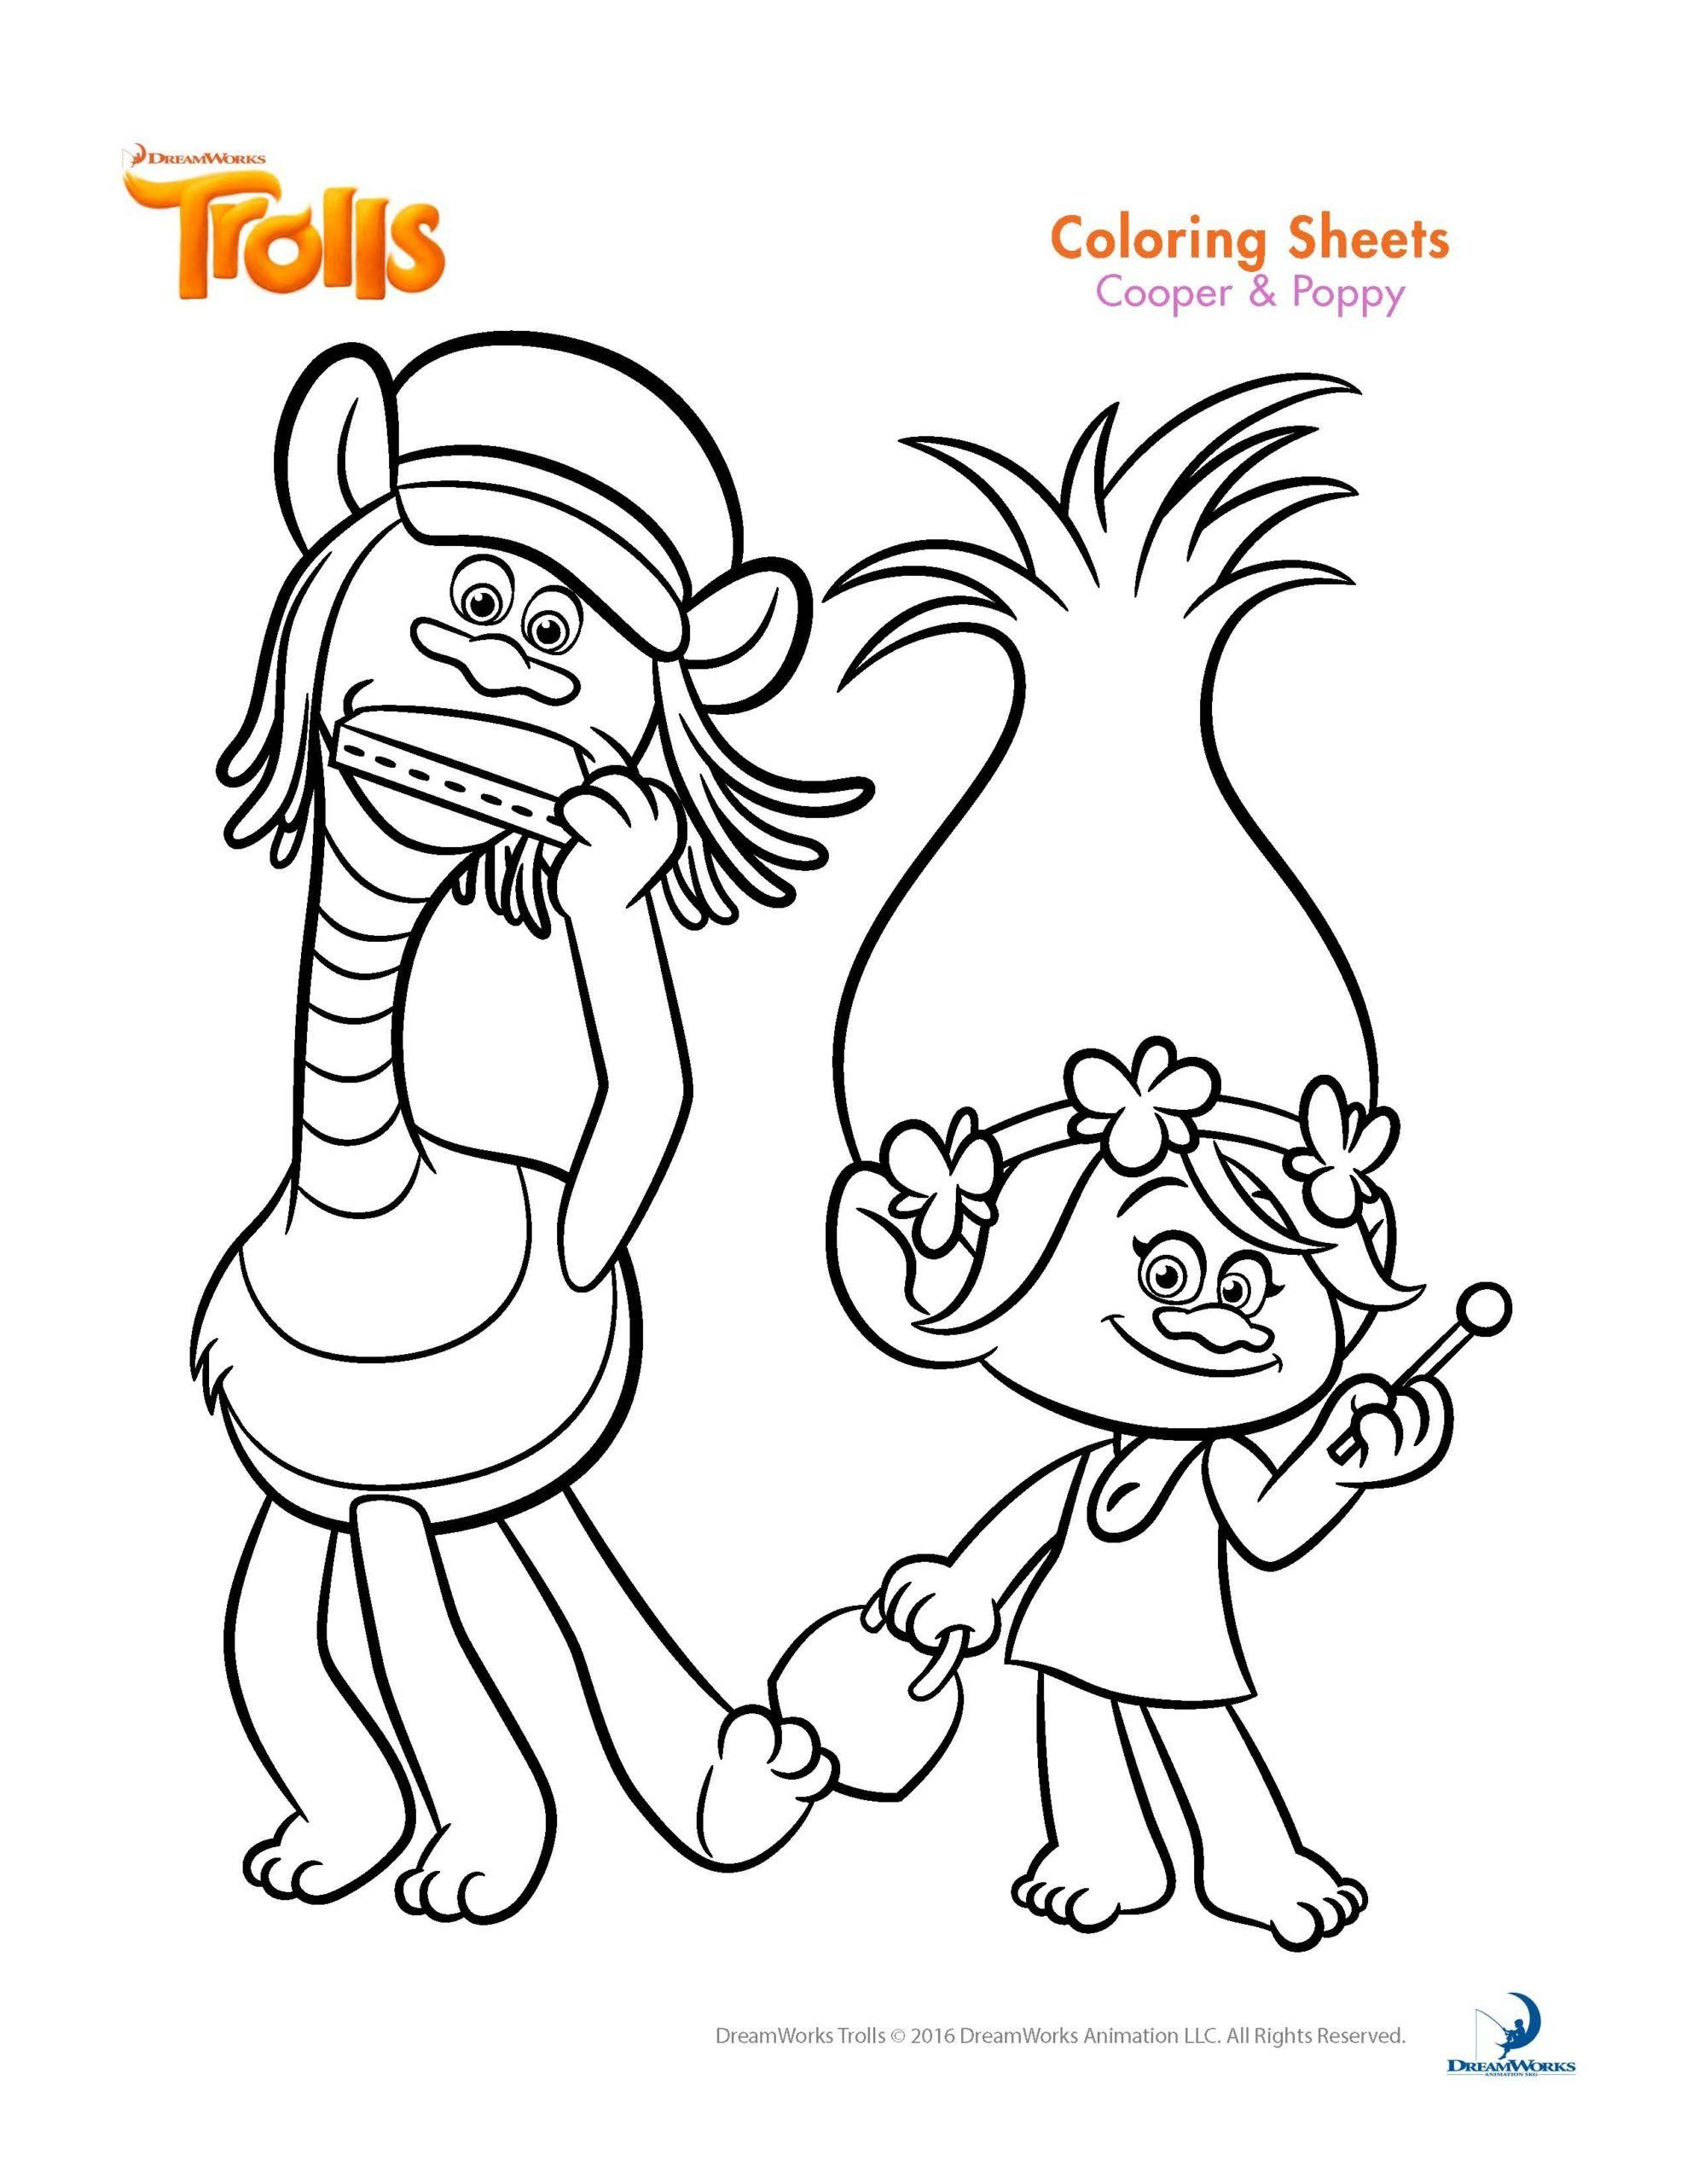 Trolls Coloring Pages For Kids Coloring Pages Trolls Coloring And Printable Activity Poppy Coloring Page Disney Coloring Pages Cartoon Coloring Pages